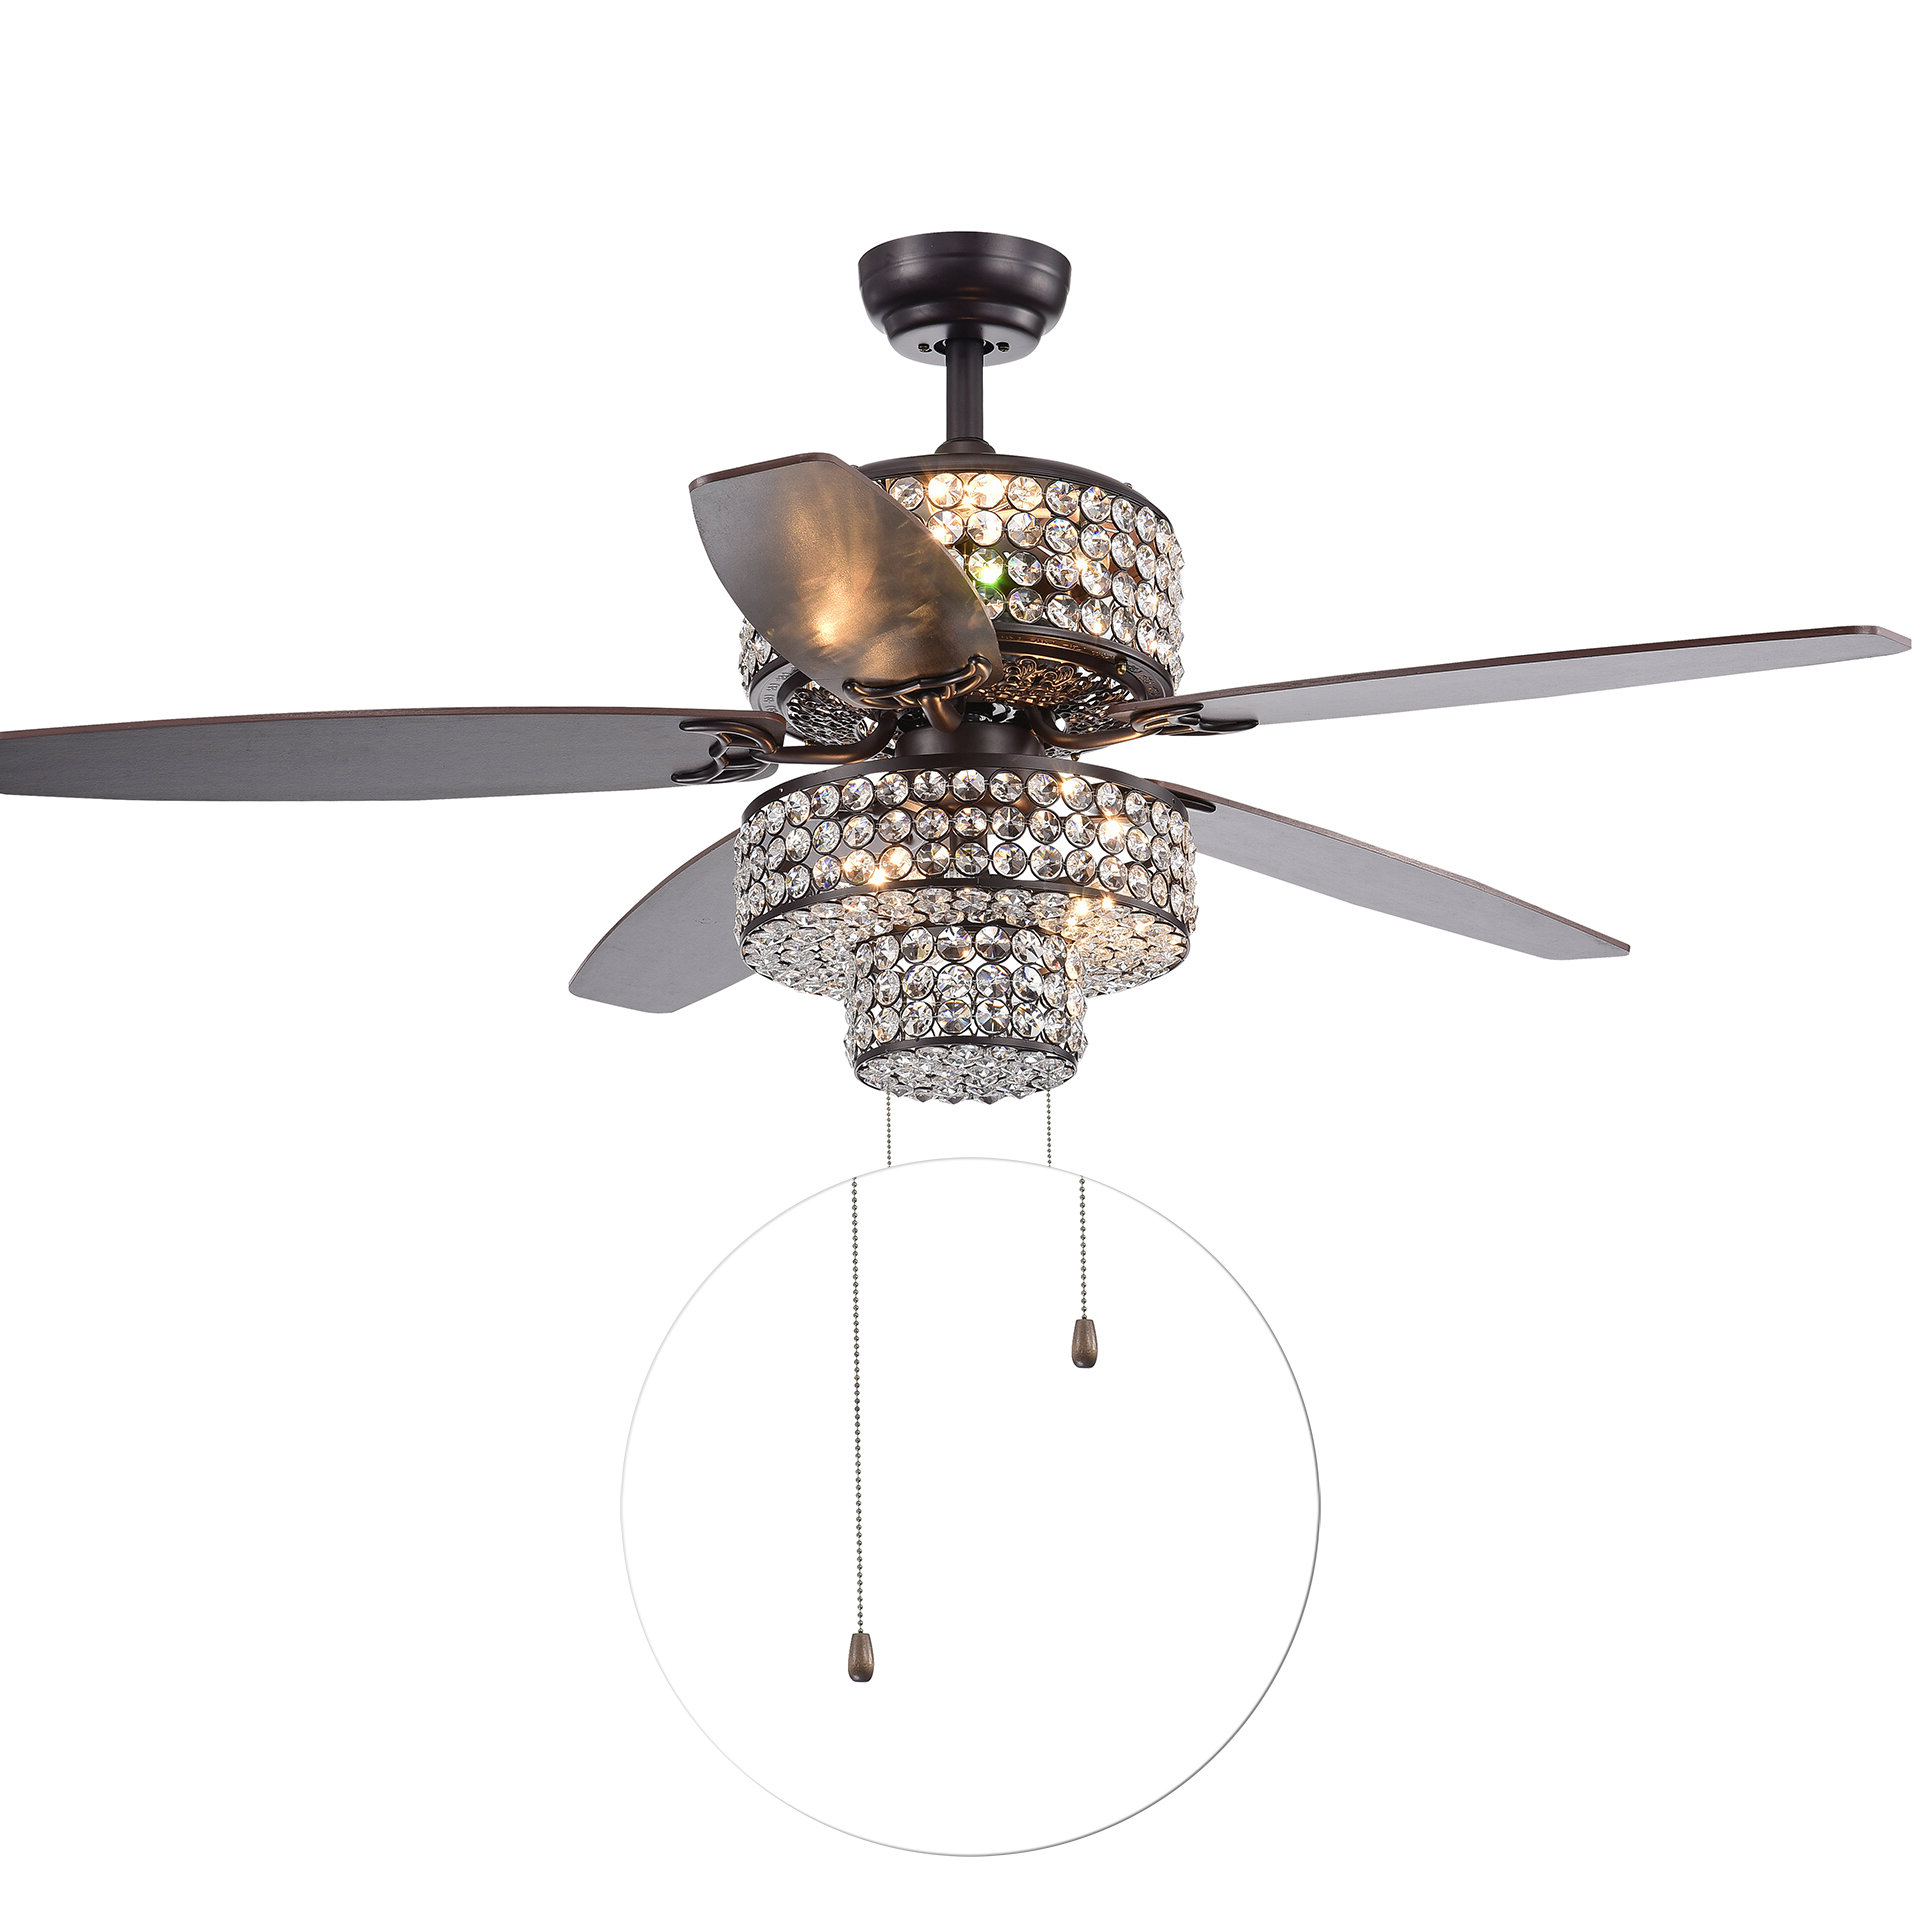 "52"" Gagnon 5 Blade Ceiling Fan With Remote, Light Kit Included With Well Known Tibuh Punched Metal Crystal 5 Blade Ceiling Fans With Remote (View 9 of 20)"